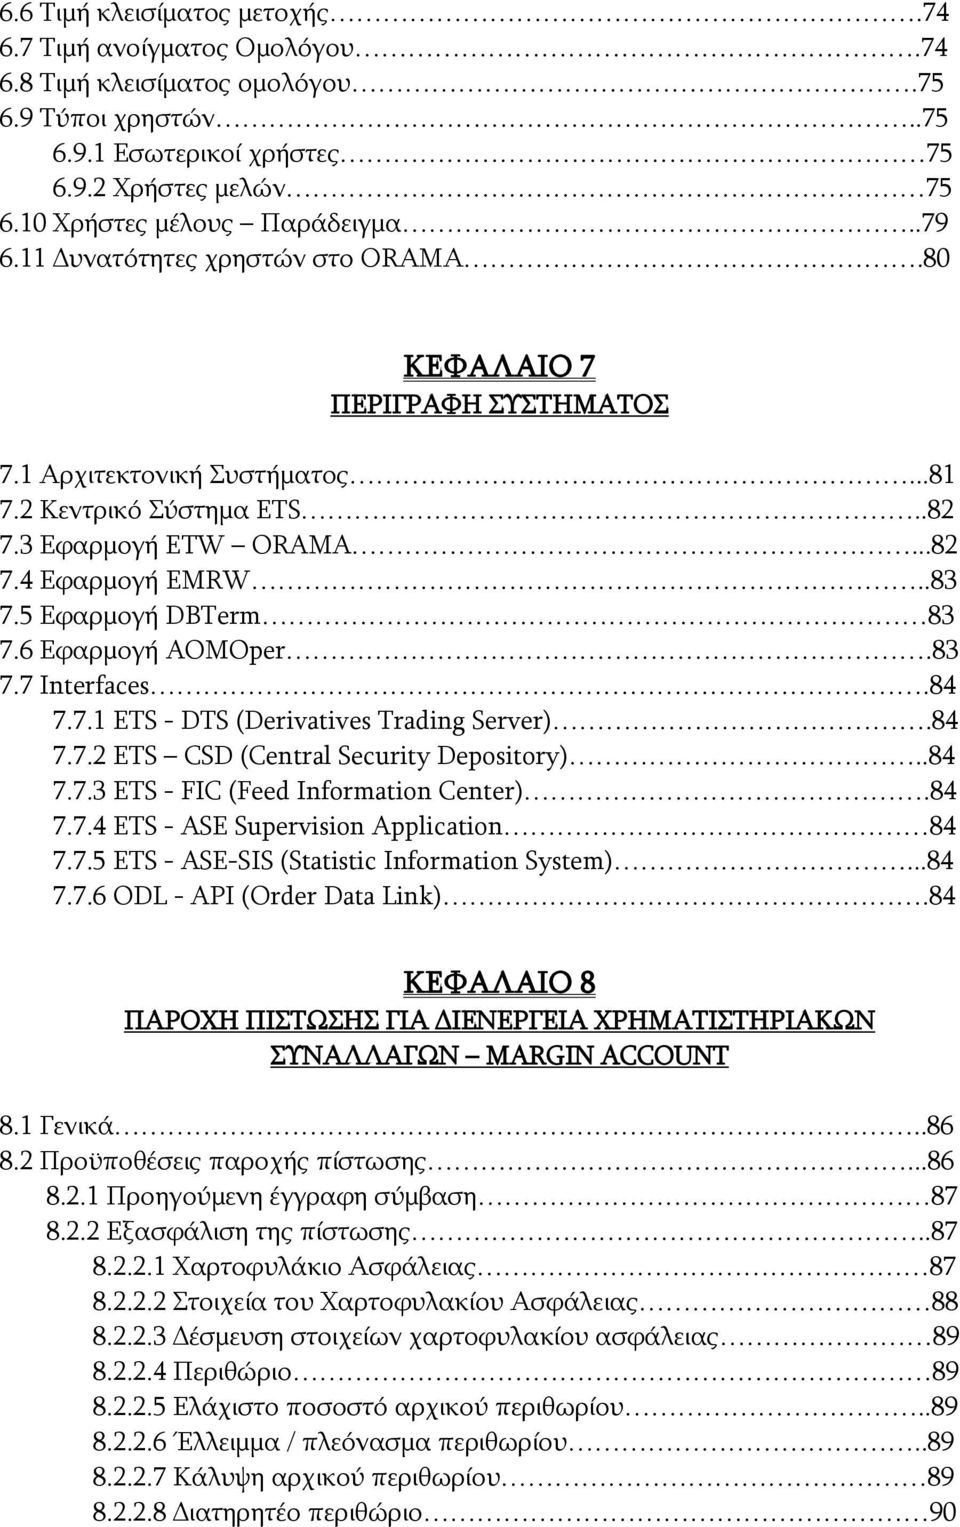 .83 7.5 Εφαρμογή DBTerm 83 7.6 Εφαρμογή AOMOper.83 7.7 Interfaces.84 7.7.1 ETS - DTS (Derivatives Trading Server).84 7.7.2 ETS CSD (Central Security Depository)..84 7.7.3 ETS - FIC (Feed Information Center).